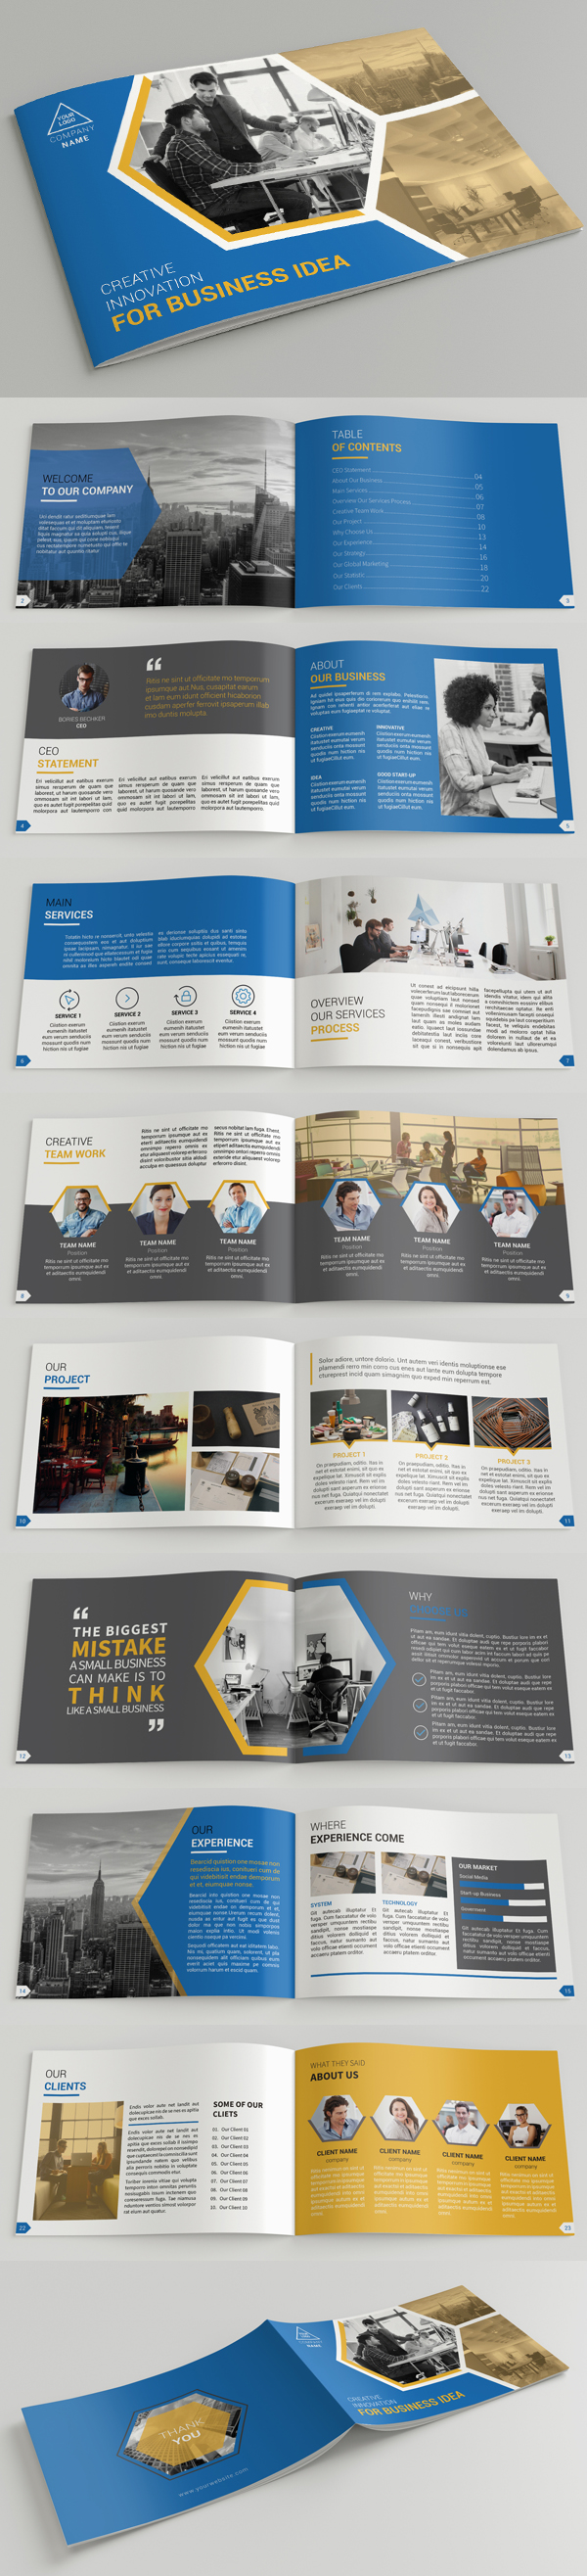 100 Professional Corporate Brochure Templates - 8